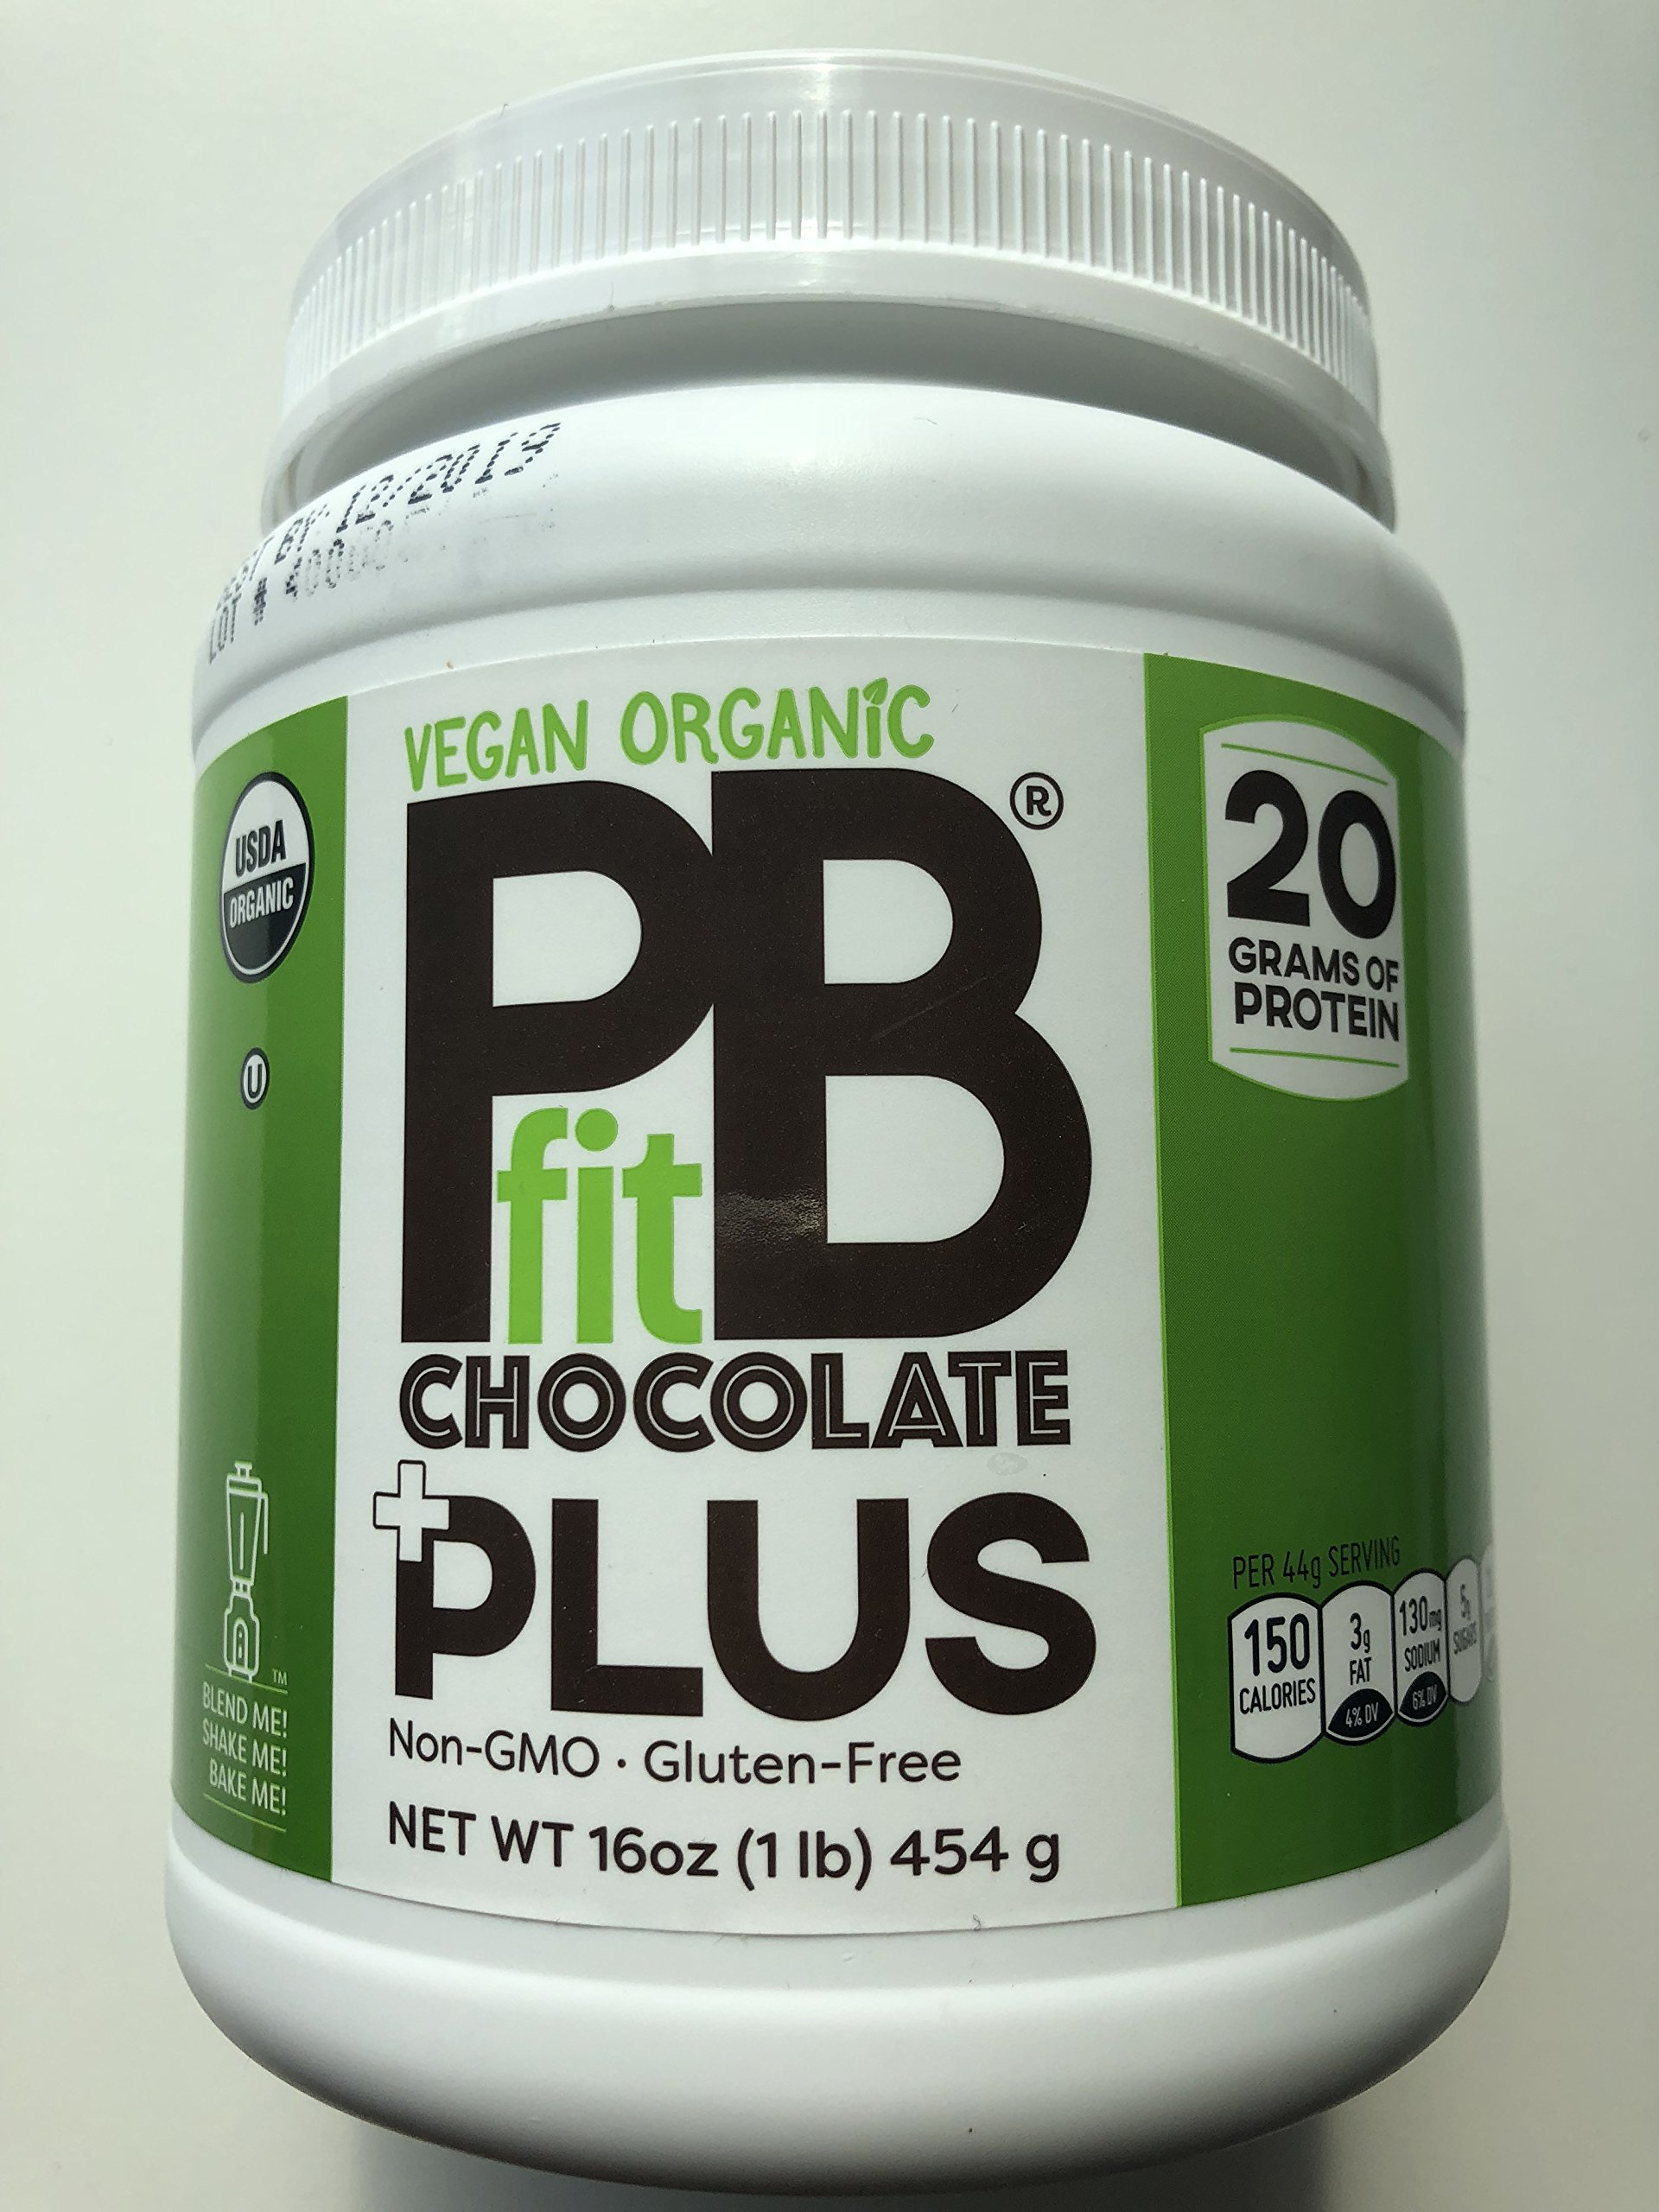 PBfit Plus Chocolate, superfood blend, Vegan Organic Non GMO, Gluten Free, 20 Grams of Clean Whey Protein, Produced by BetterBodyFoods 454 Gram